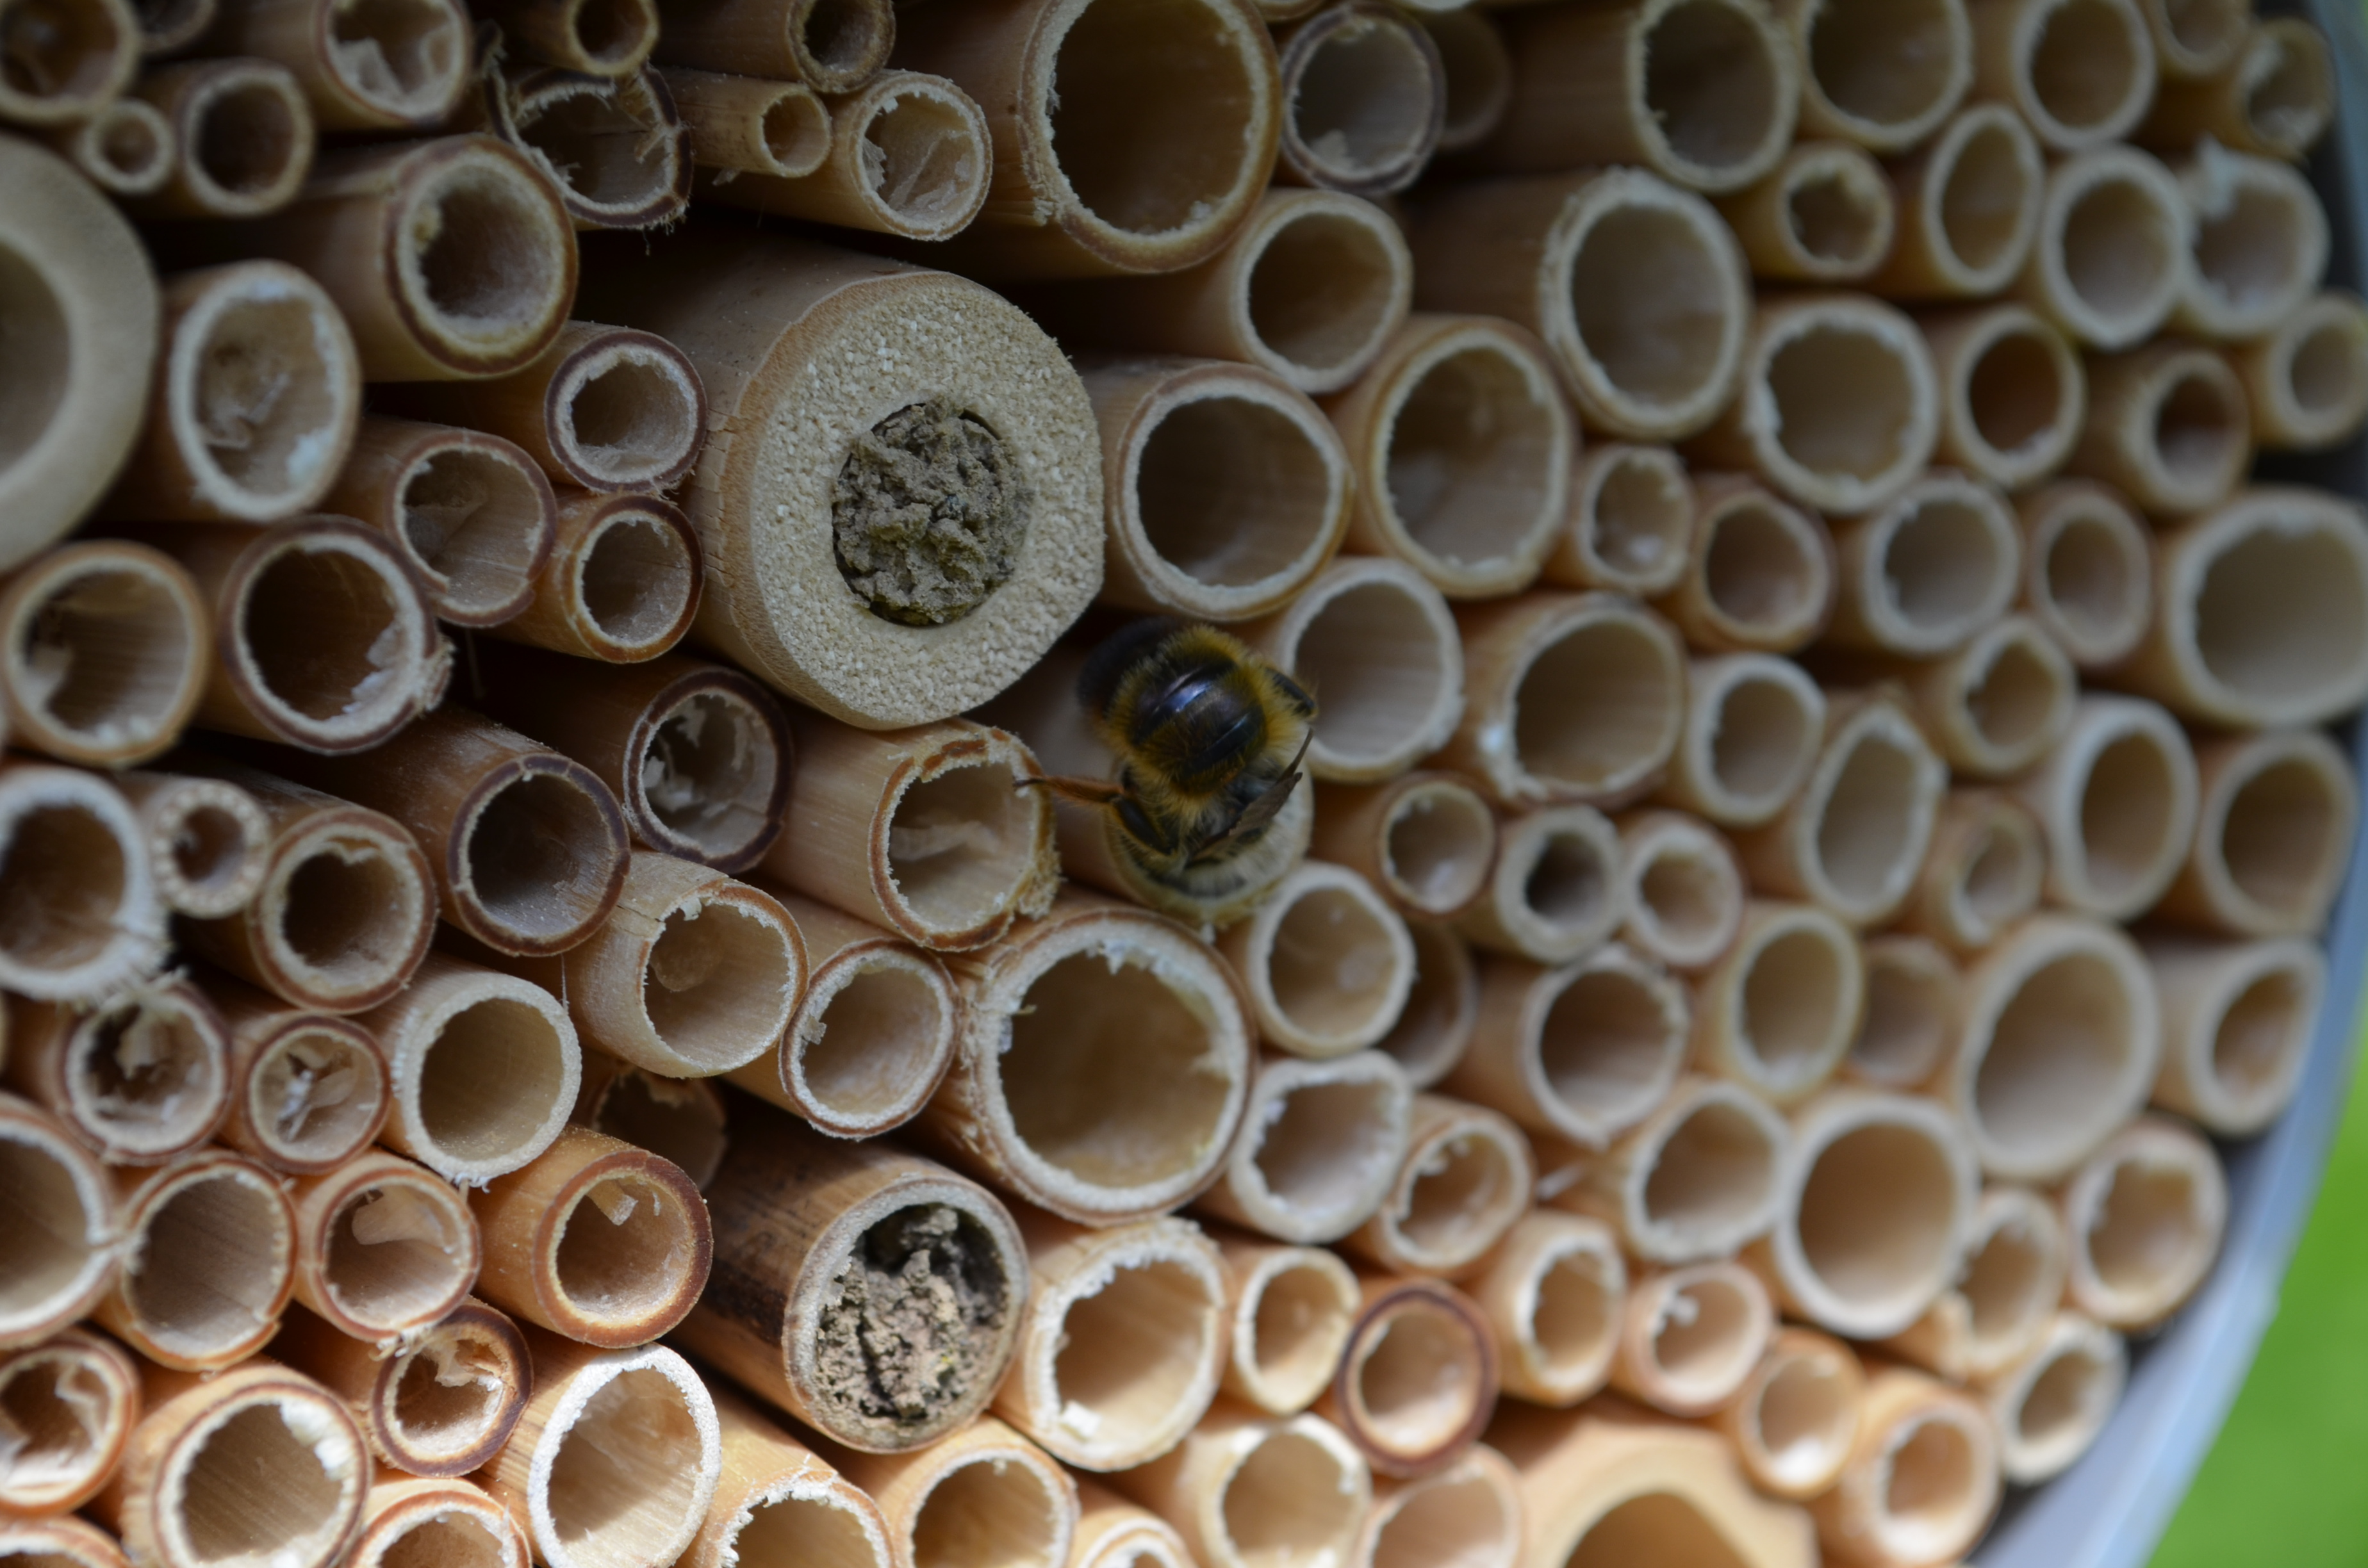 Bee hotels are helping the Bioveins researchers better understand bee and wasp populations in cities, which could help guide conservation efforts. Image credit - Sofia Mangili